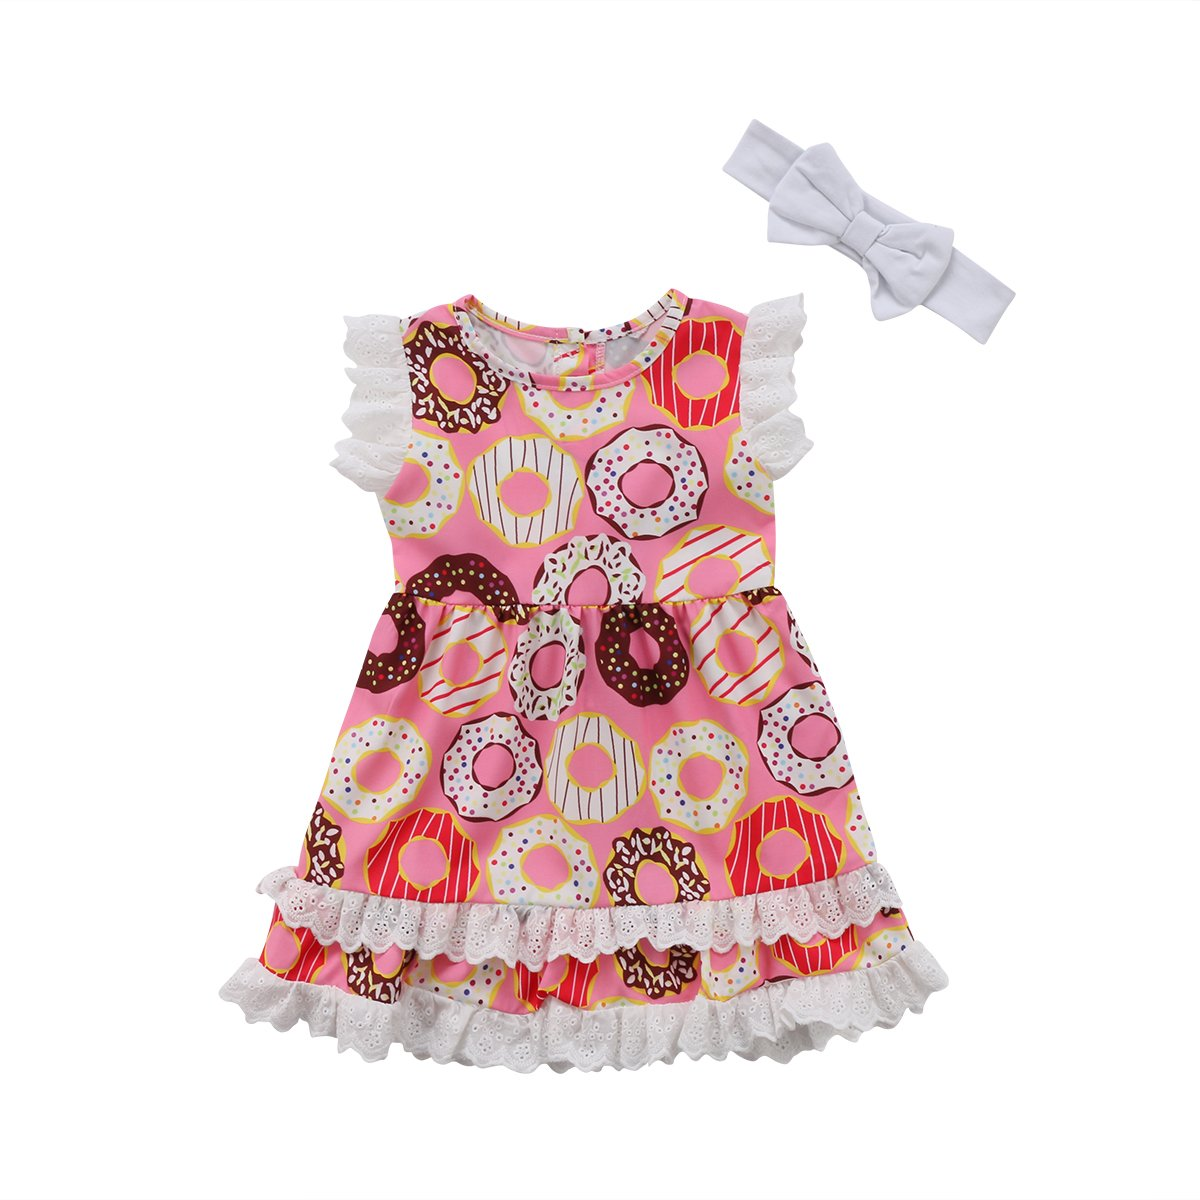 077a31424f74f Top 10 wholesale 4 Years Baby Dress - Chinabrands.com